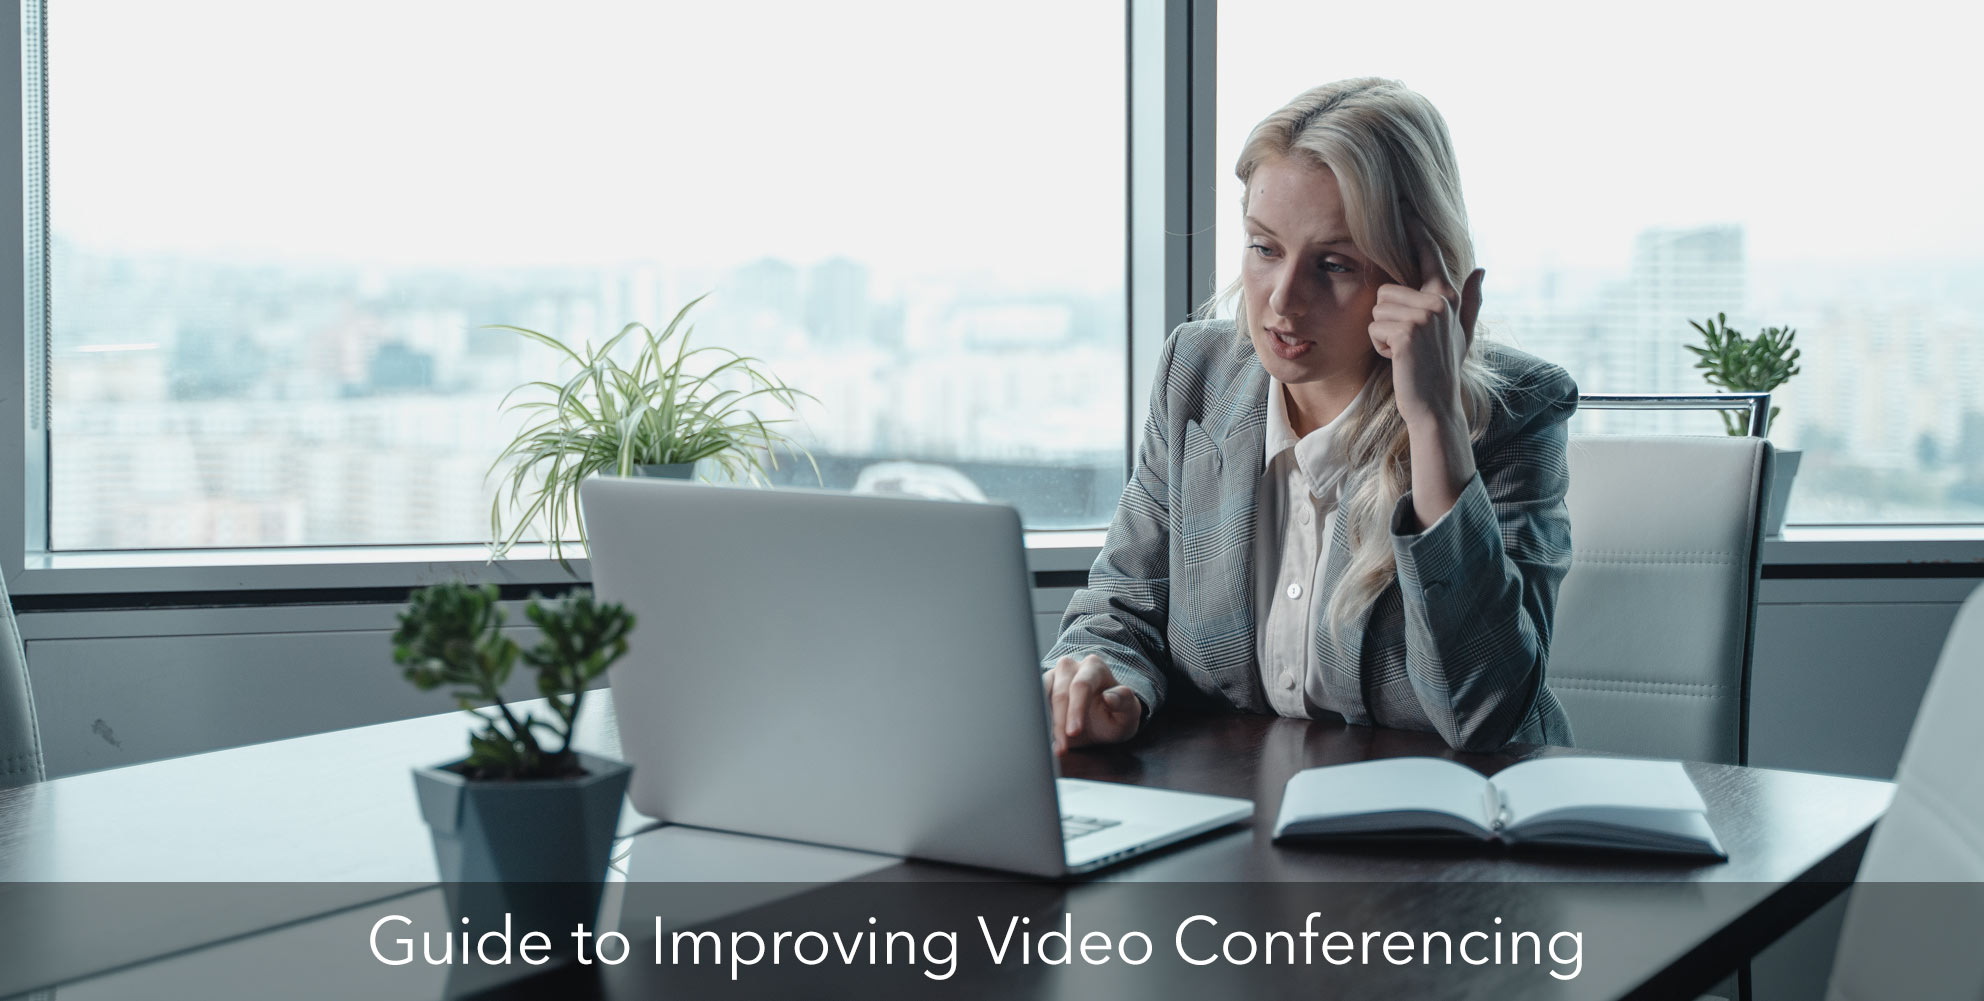 Guide to improve video conferencing